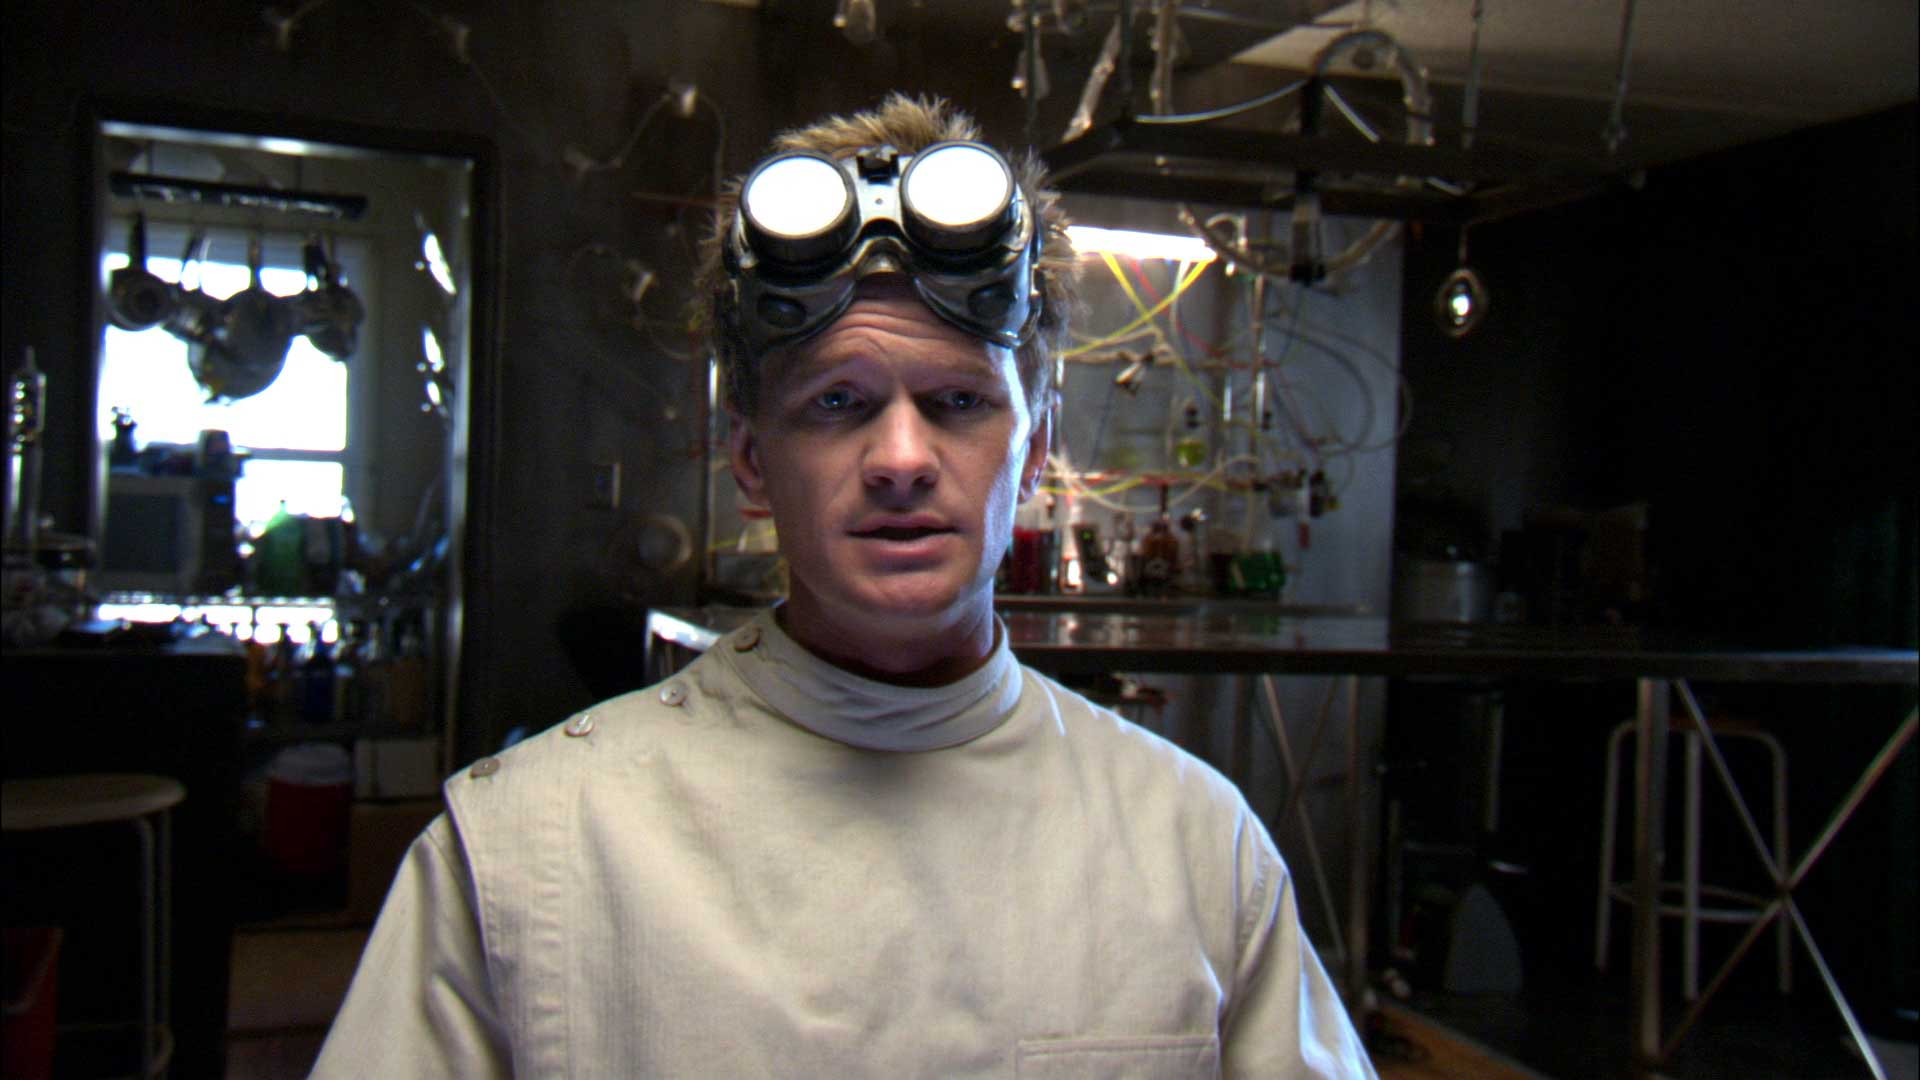 NPH starred as a poor man's villain with a sidekick whose only superpower is making things damp in Dr. Horrible's Sing-Along Blog in 2008.